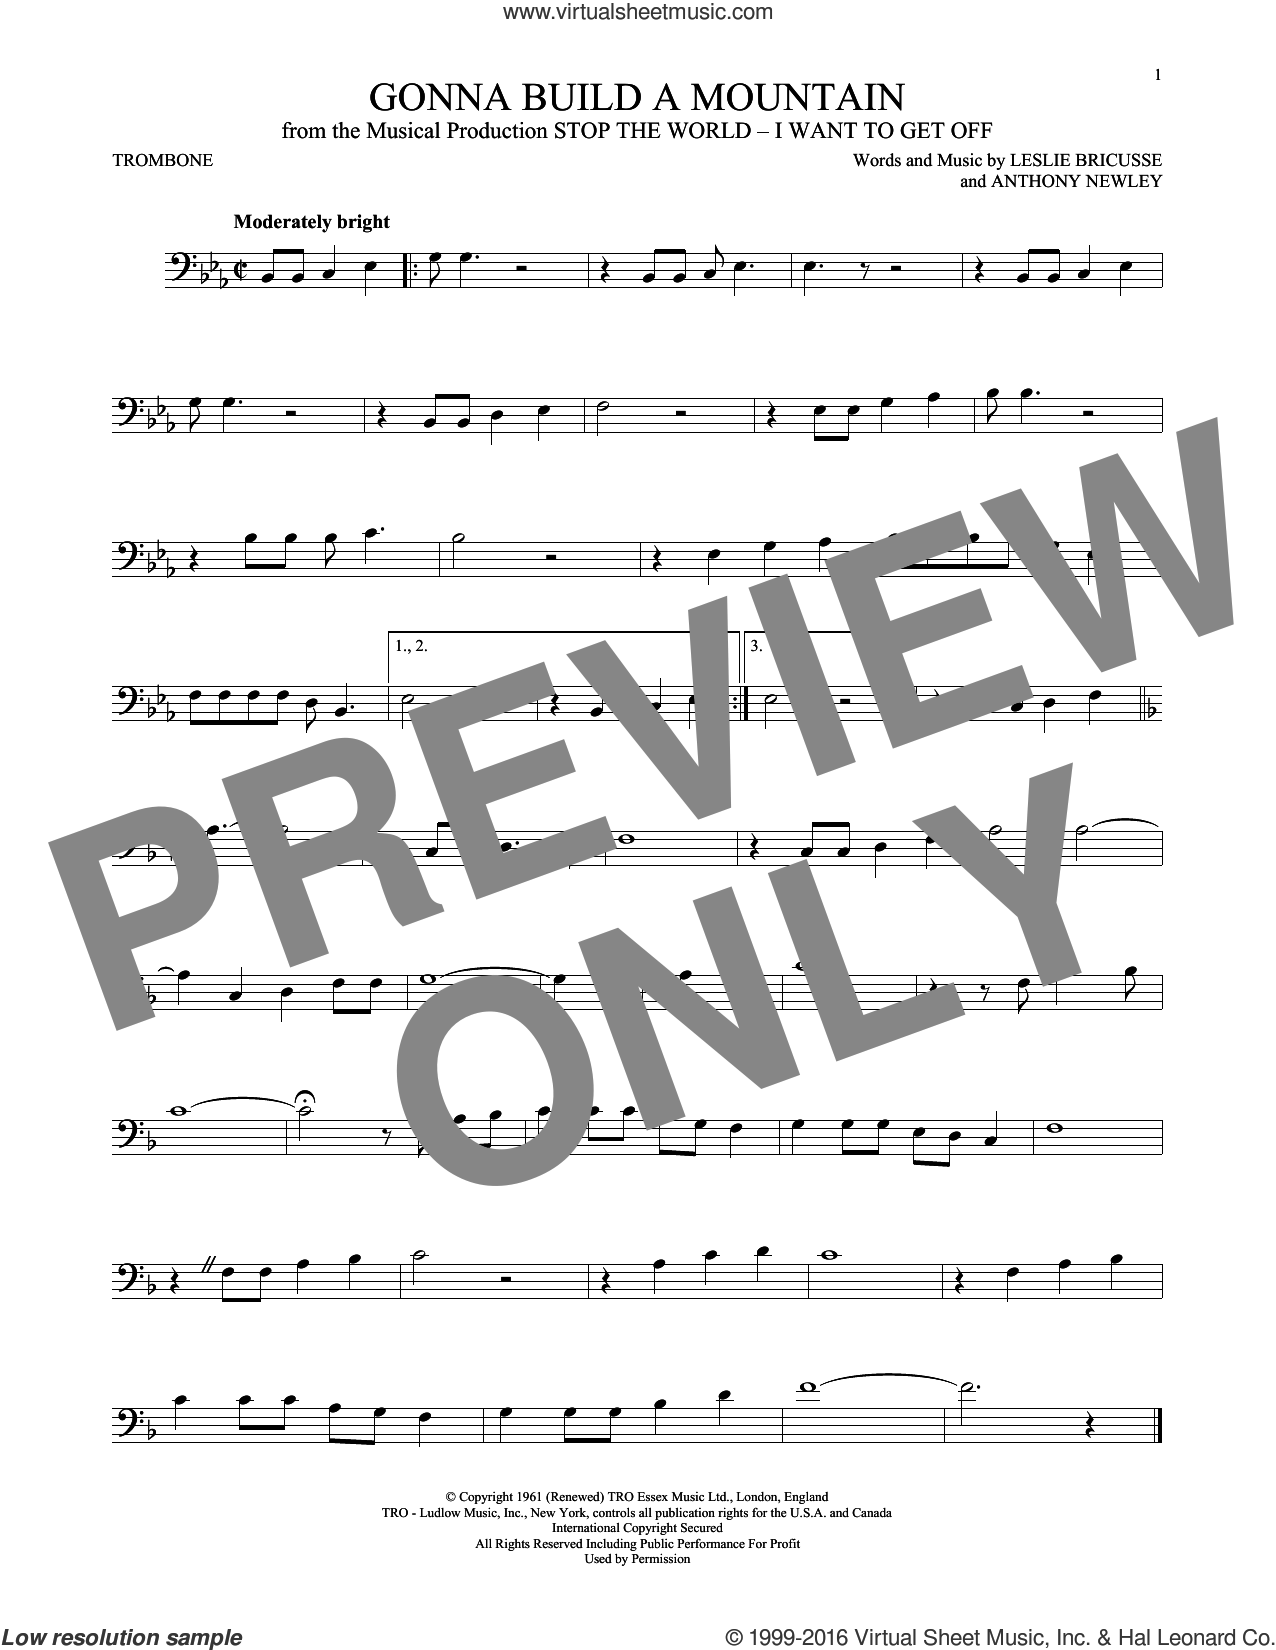 Gonna Build A Mountain sheet music for trombone solo by Leslie Bricusse and Anthony Newley, intermediate. Score Image Preview.